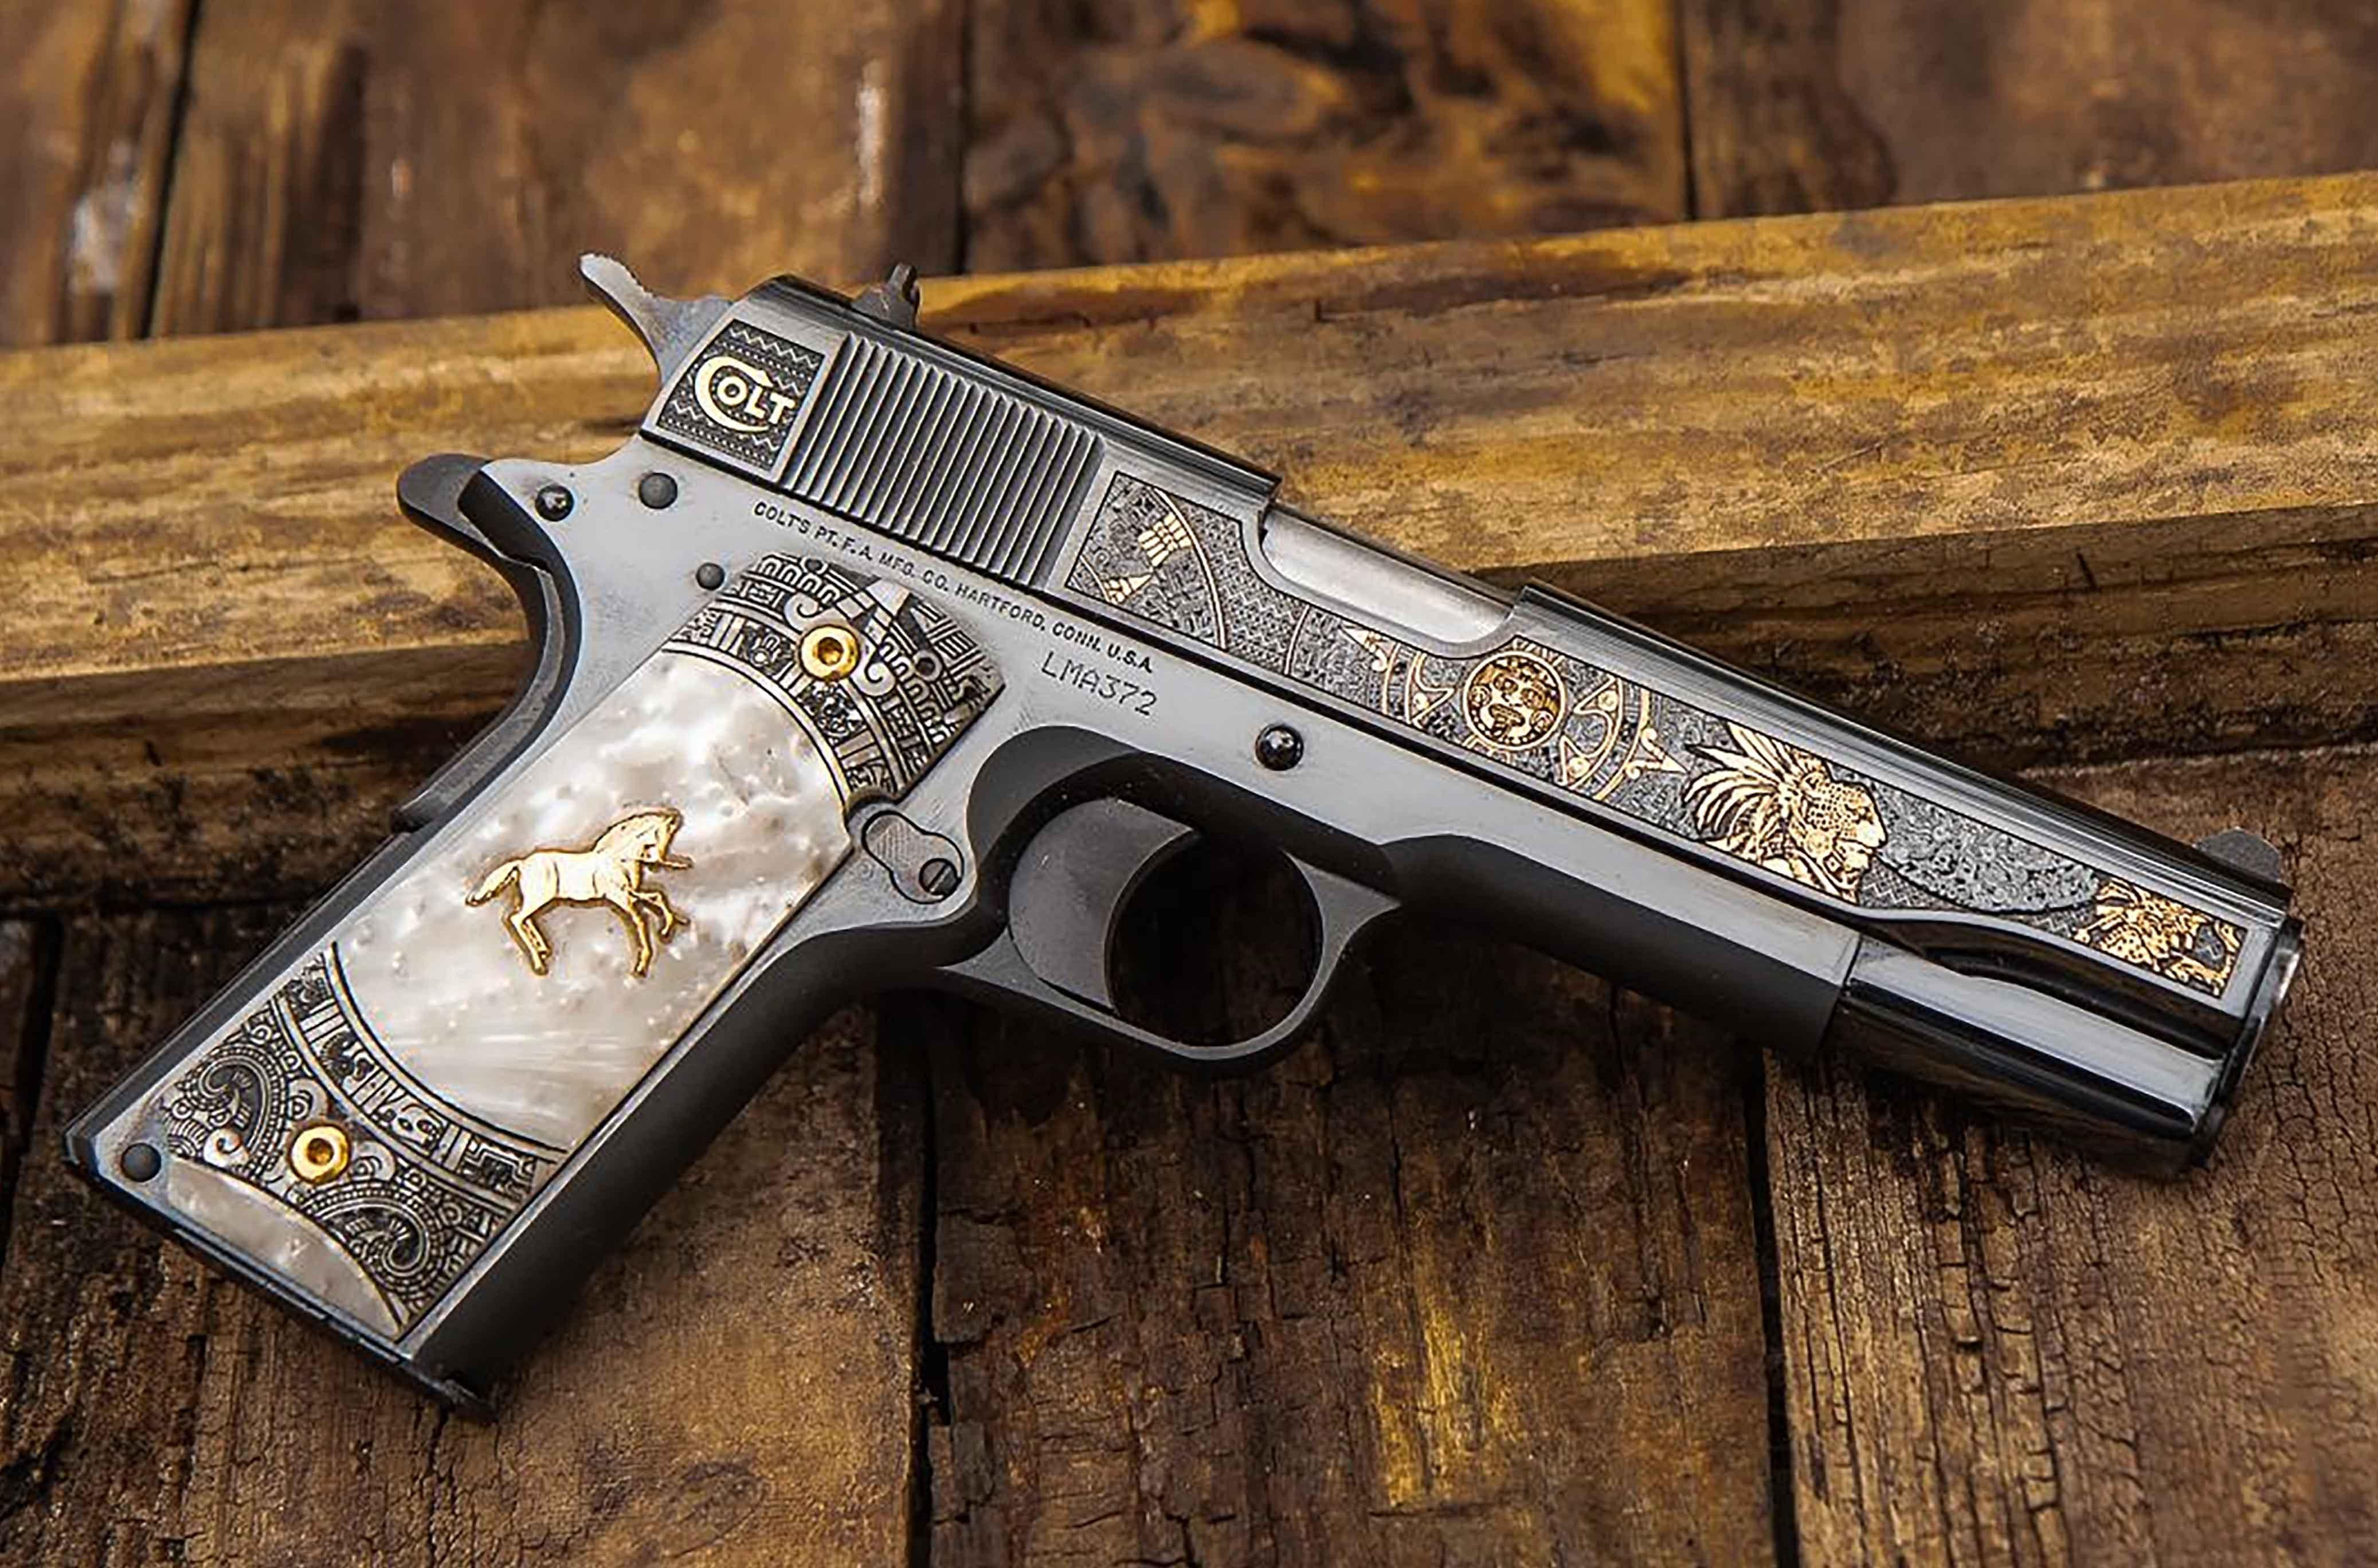 COLT AZTEC JAG KNIGHT 38SUP 5 - 1 OF 400/SPECIAL SER. NUMBERS